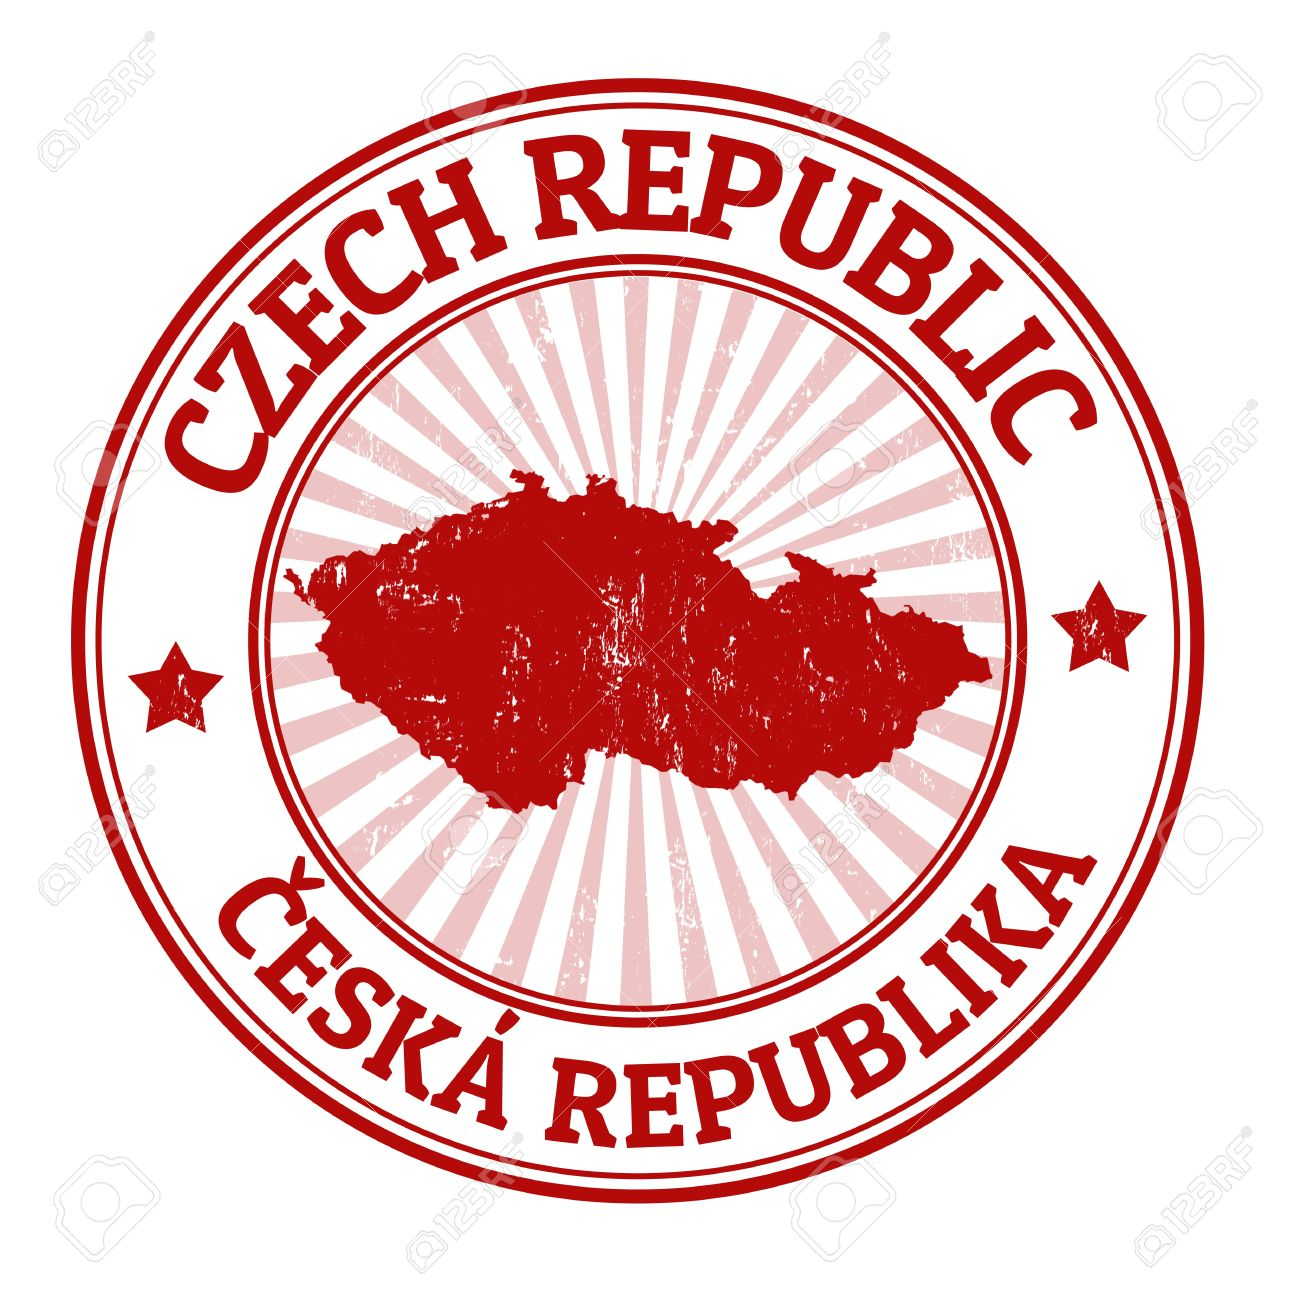 Czech Republic clipart #1, Download drawings